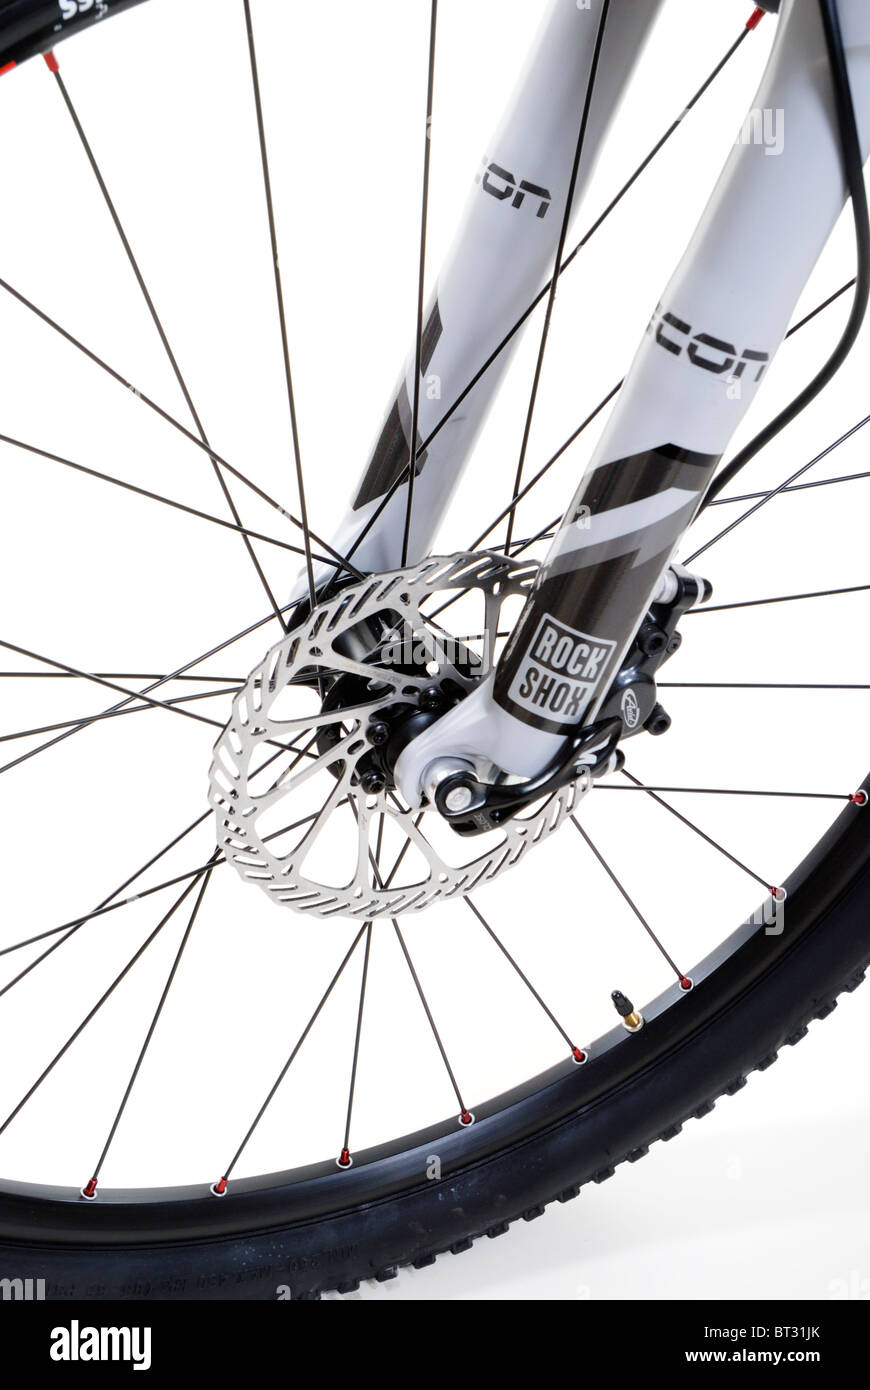 f7060920610 Mountain bike front wheel with hydraulic disc brakes and suspension fork